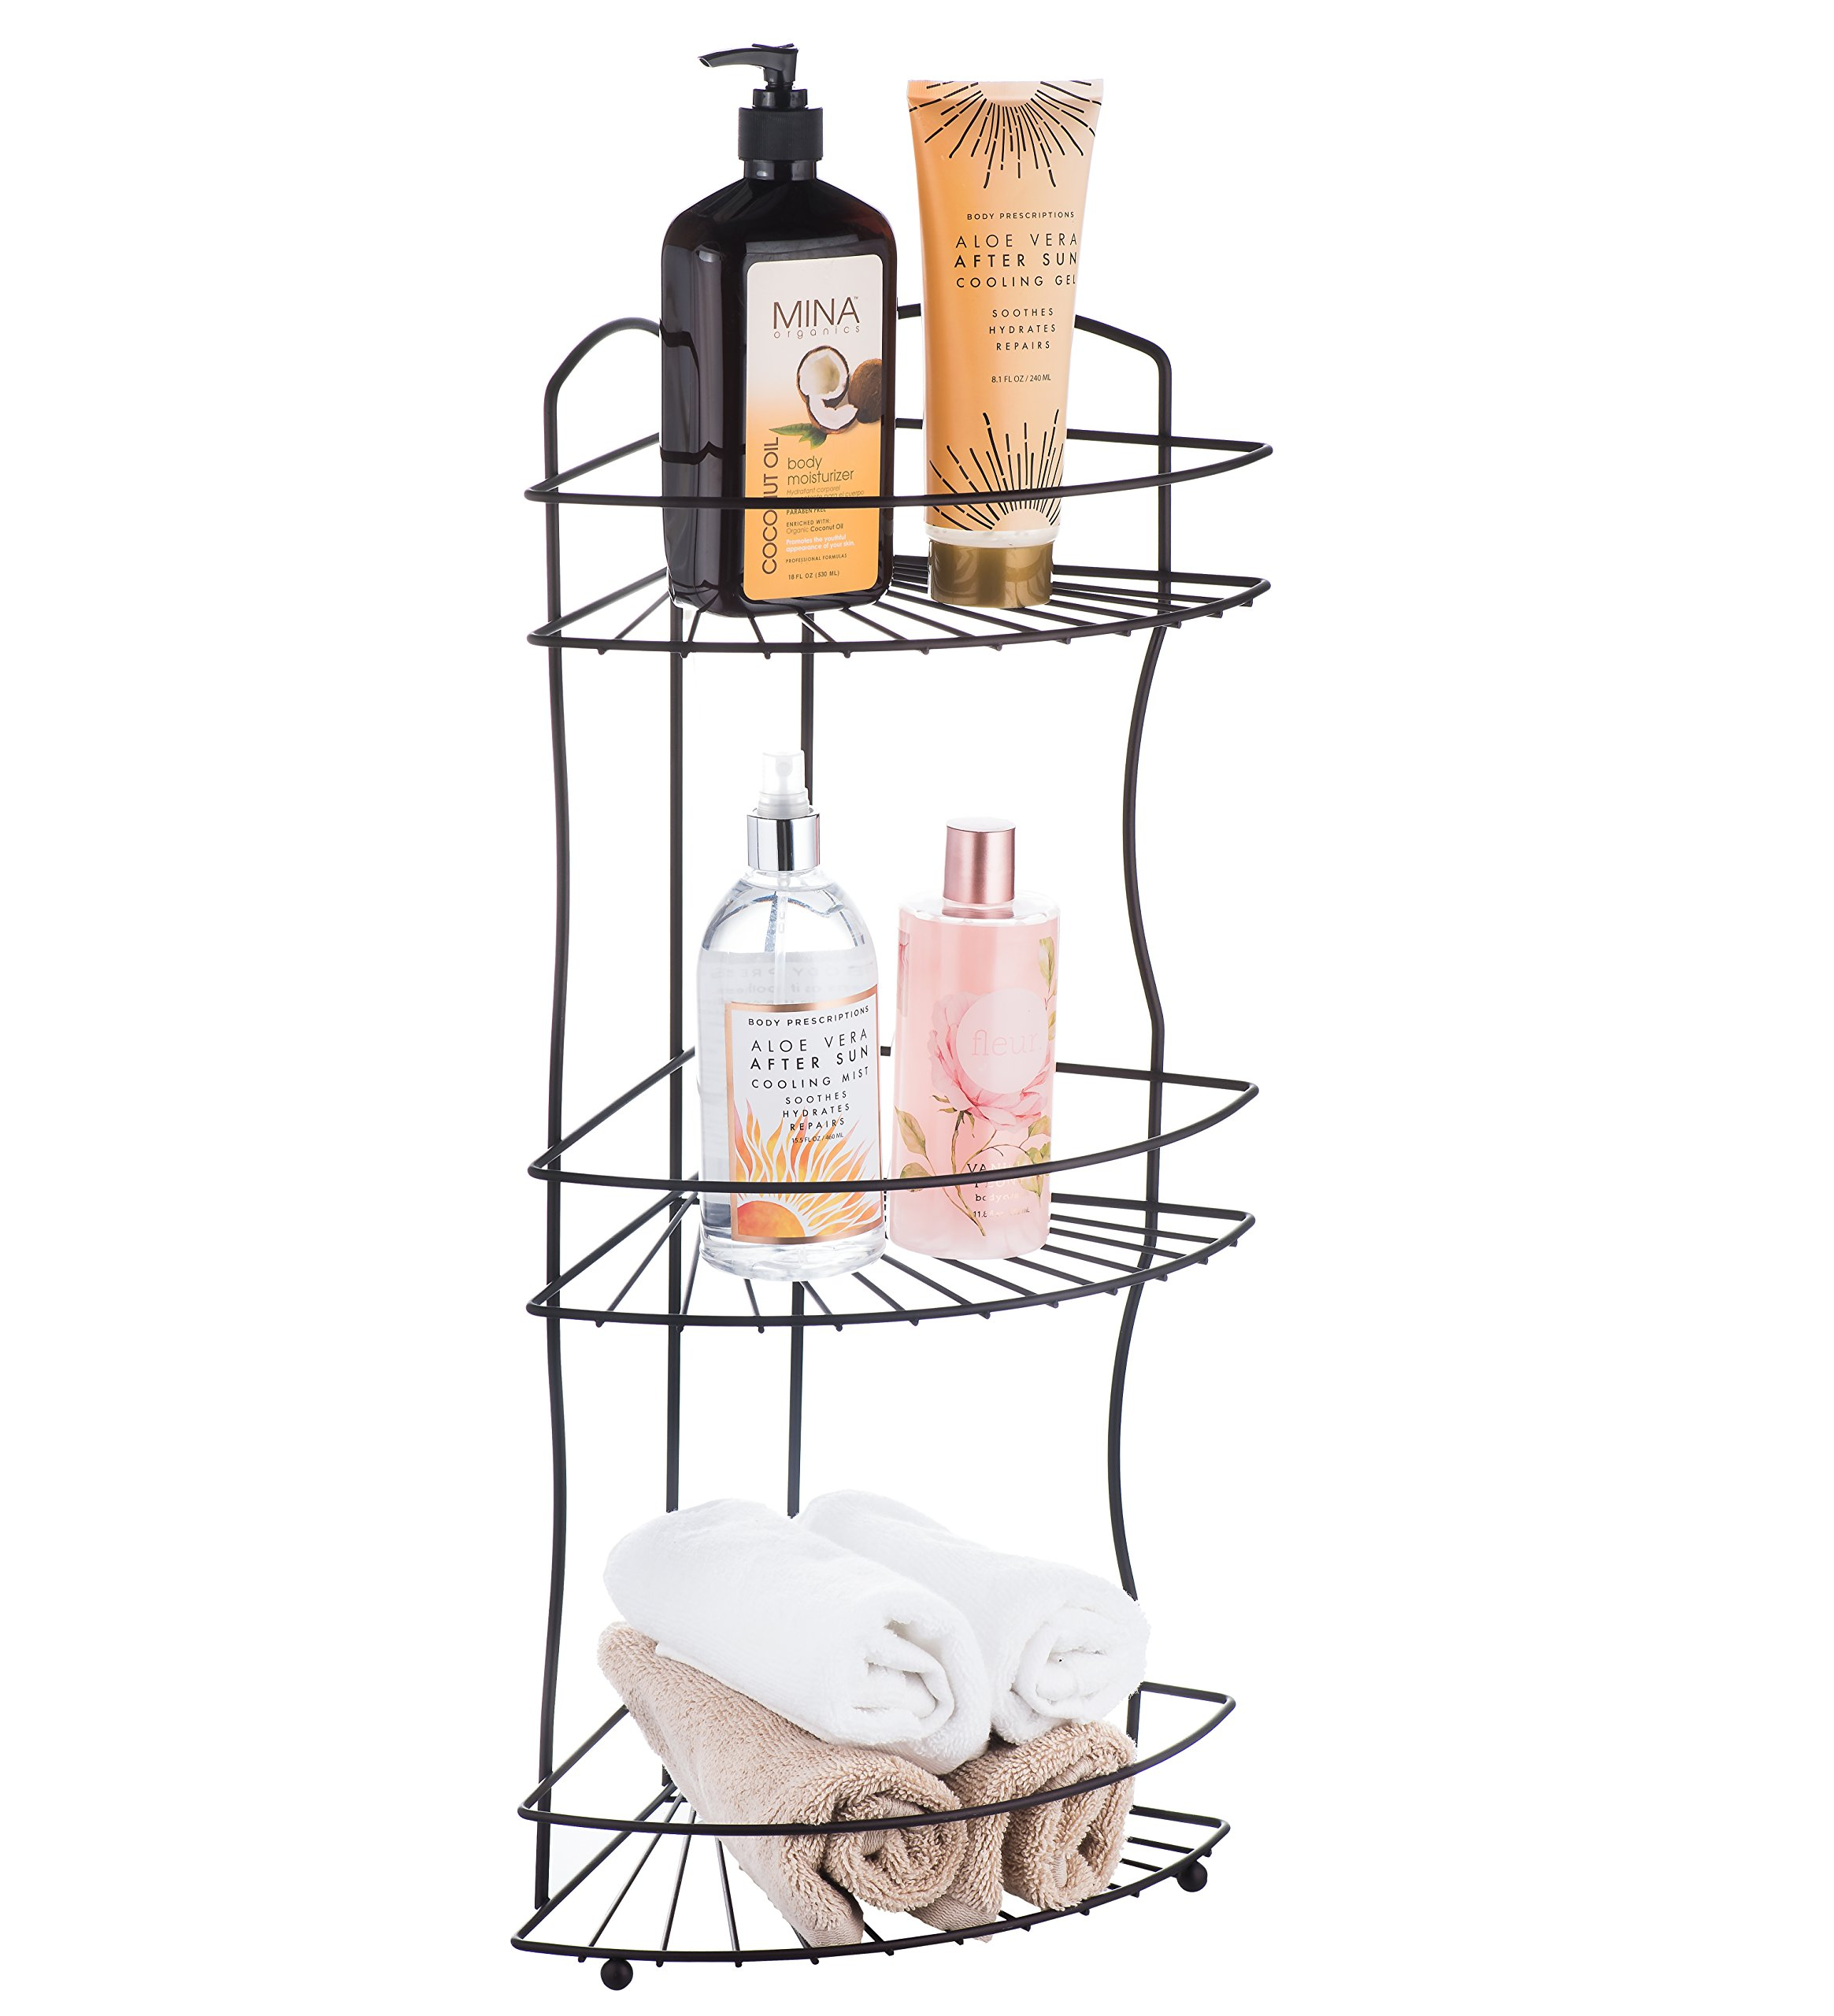 AMG and Enchante Accessories Free Standing Bathroom Spa Tower Floor Caddy, FC232-A BKN, Black Nickel